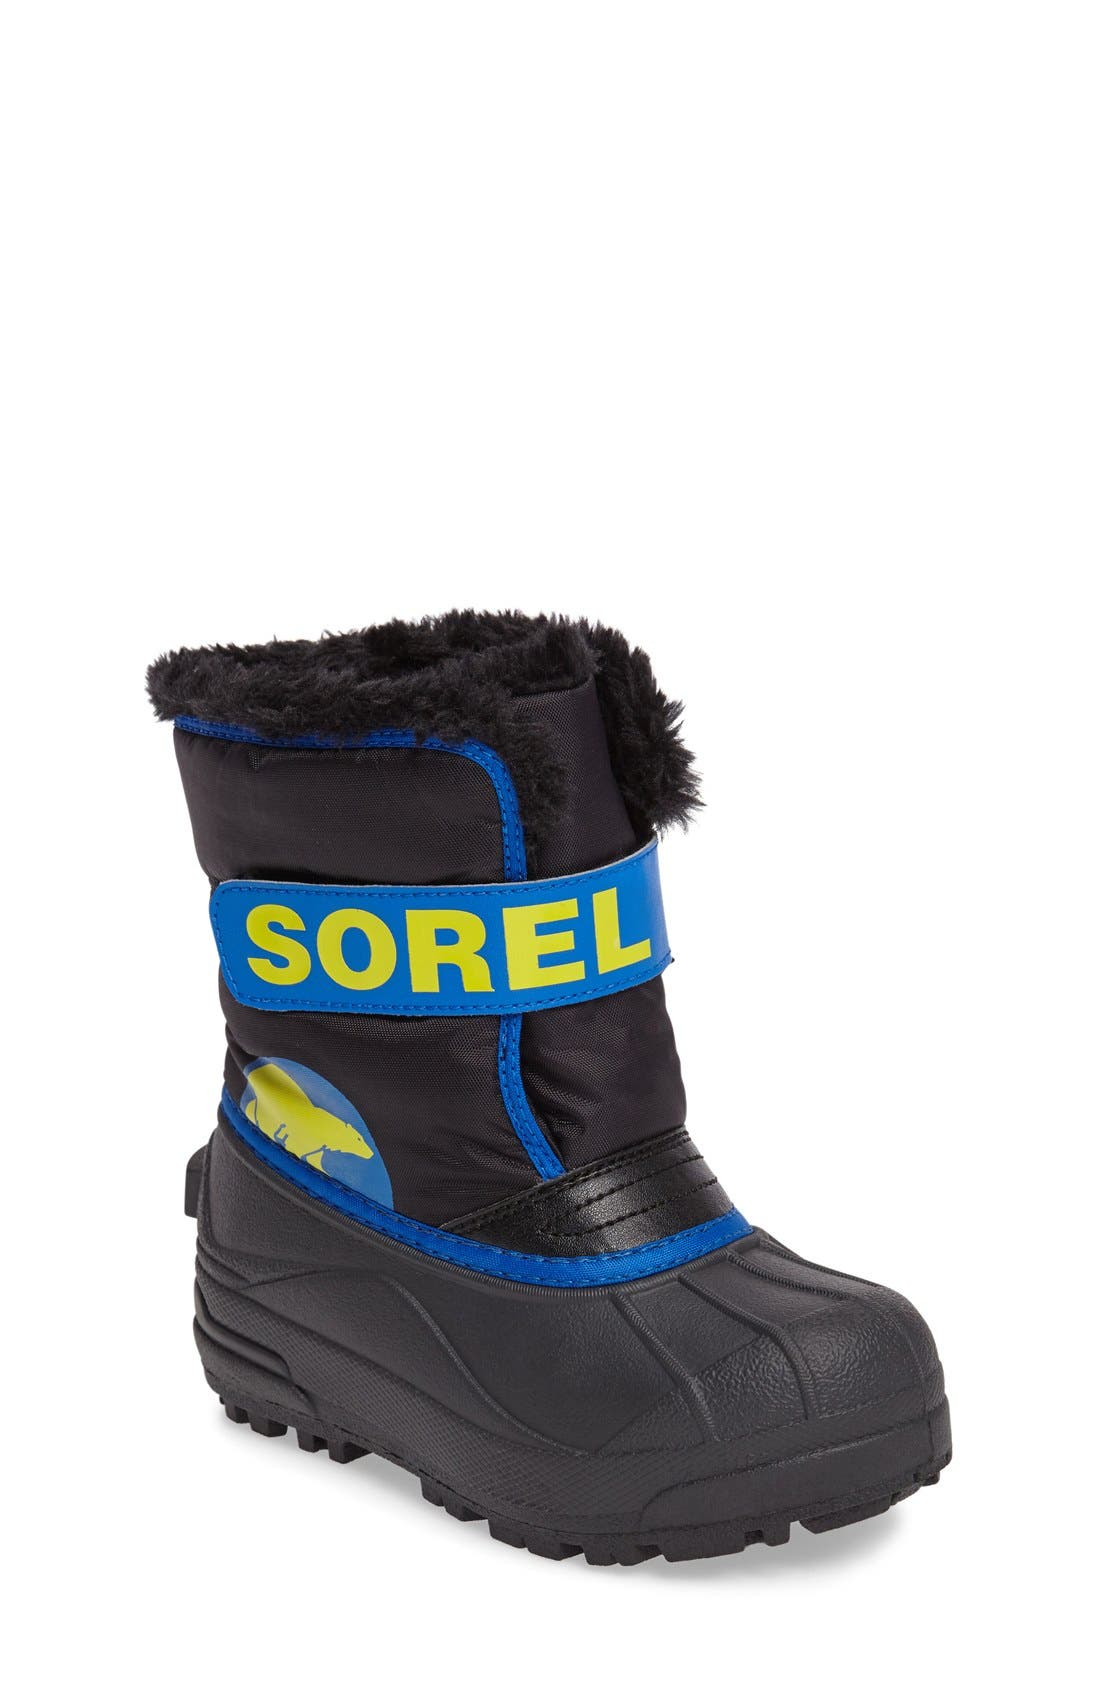 SOREL, 'Snow Commander' Boot, Main thumbnail 1, color, 011